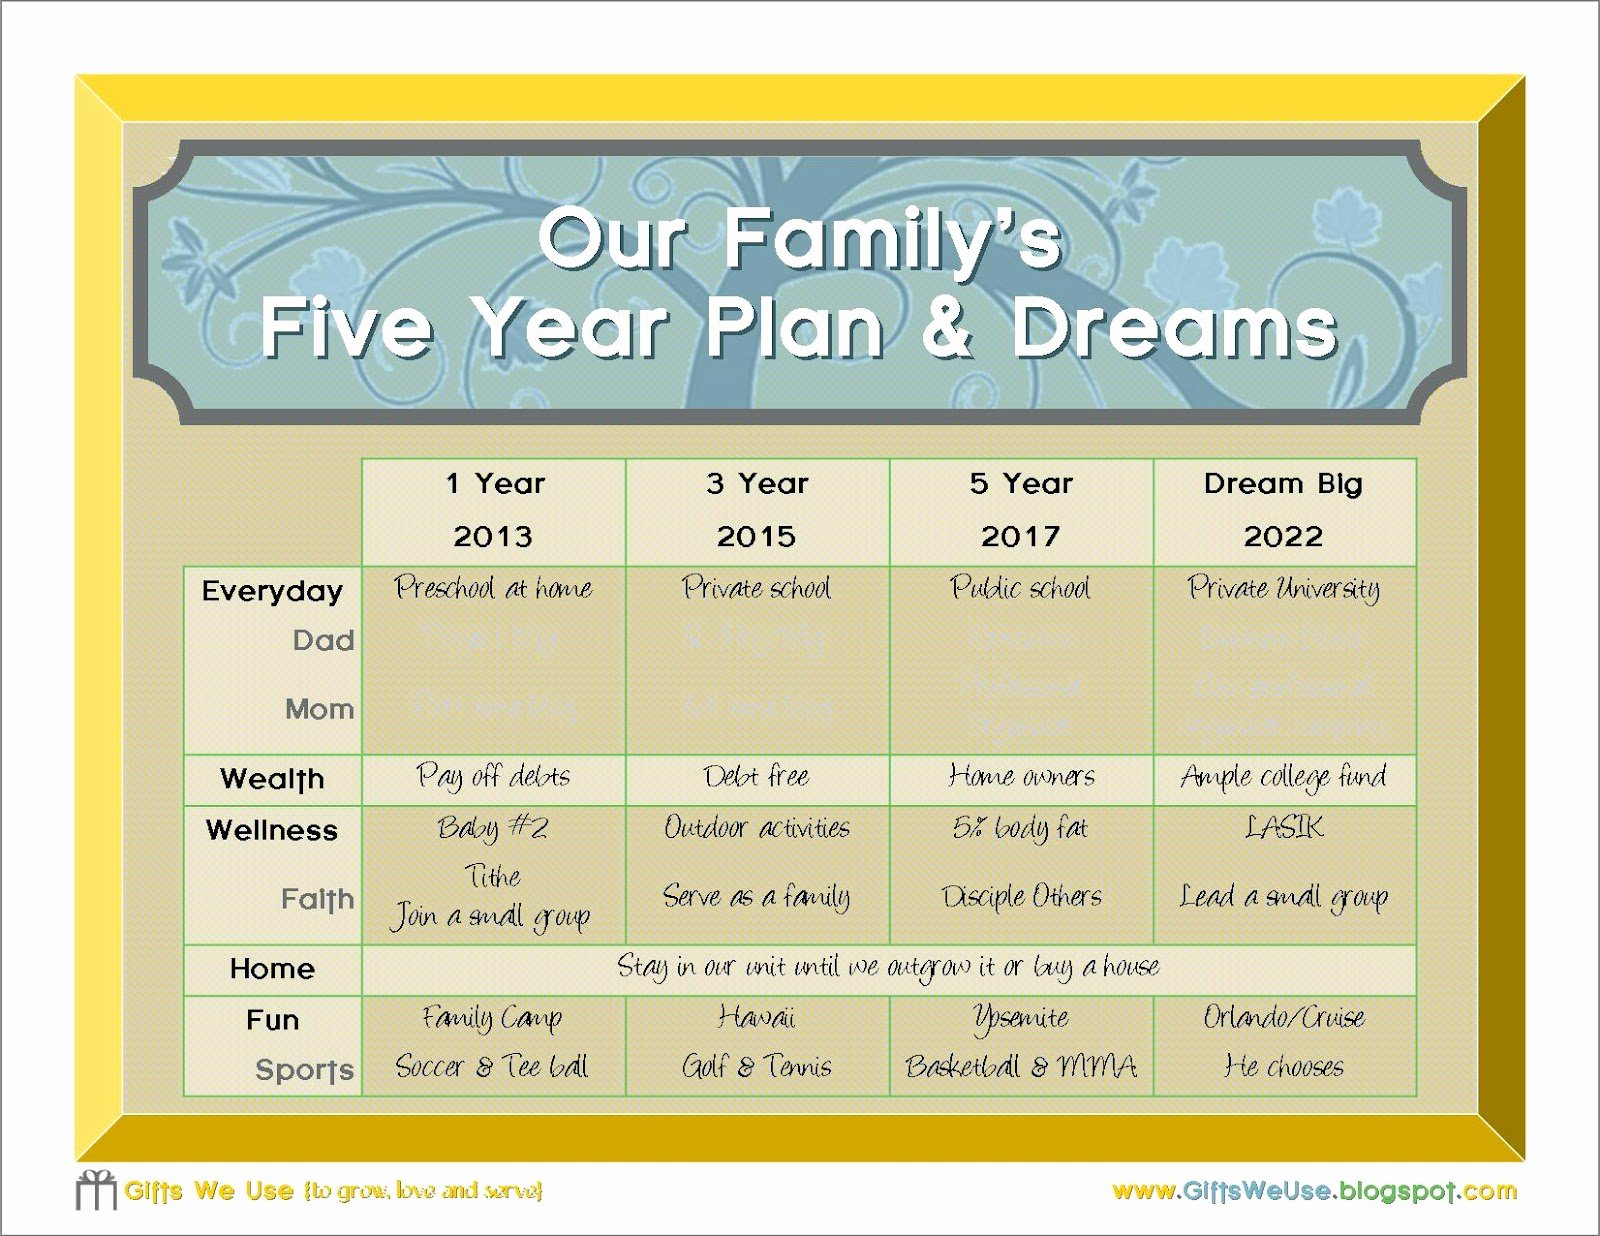 5 Year Life Plan Template Best Of Gifts We Use Family 5 Year Plan & A Printable